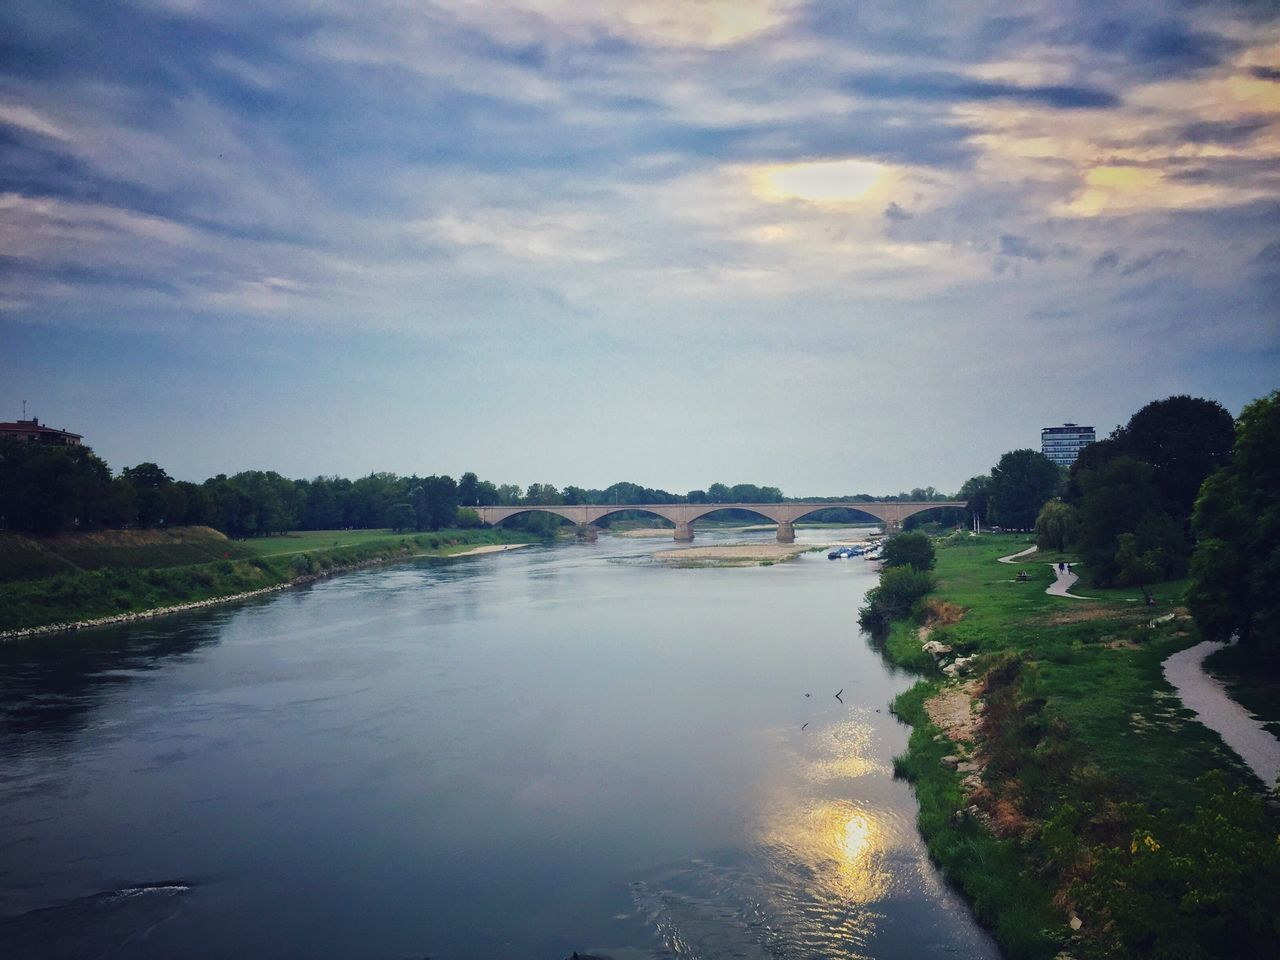 sky, water, cloud - sky, river, scenics, reflection, no people, outdoors, tree, beauty in nature, nature, tranquil scene, architecture, built structure, day, landscape